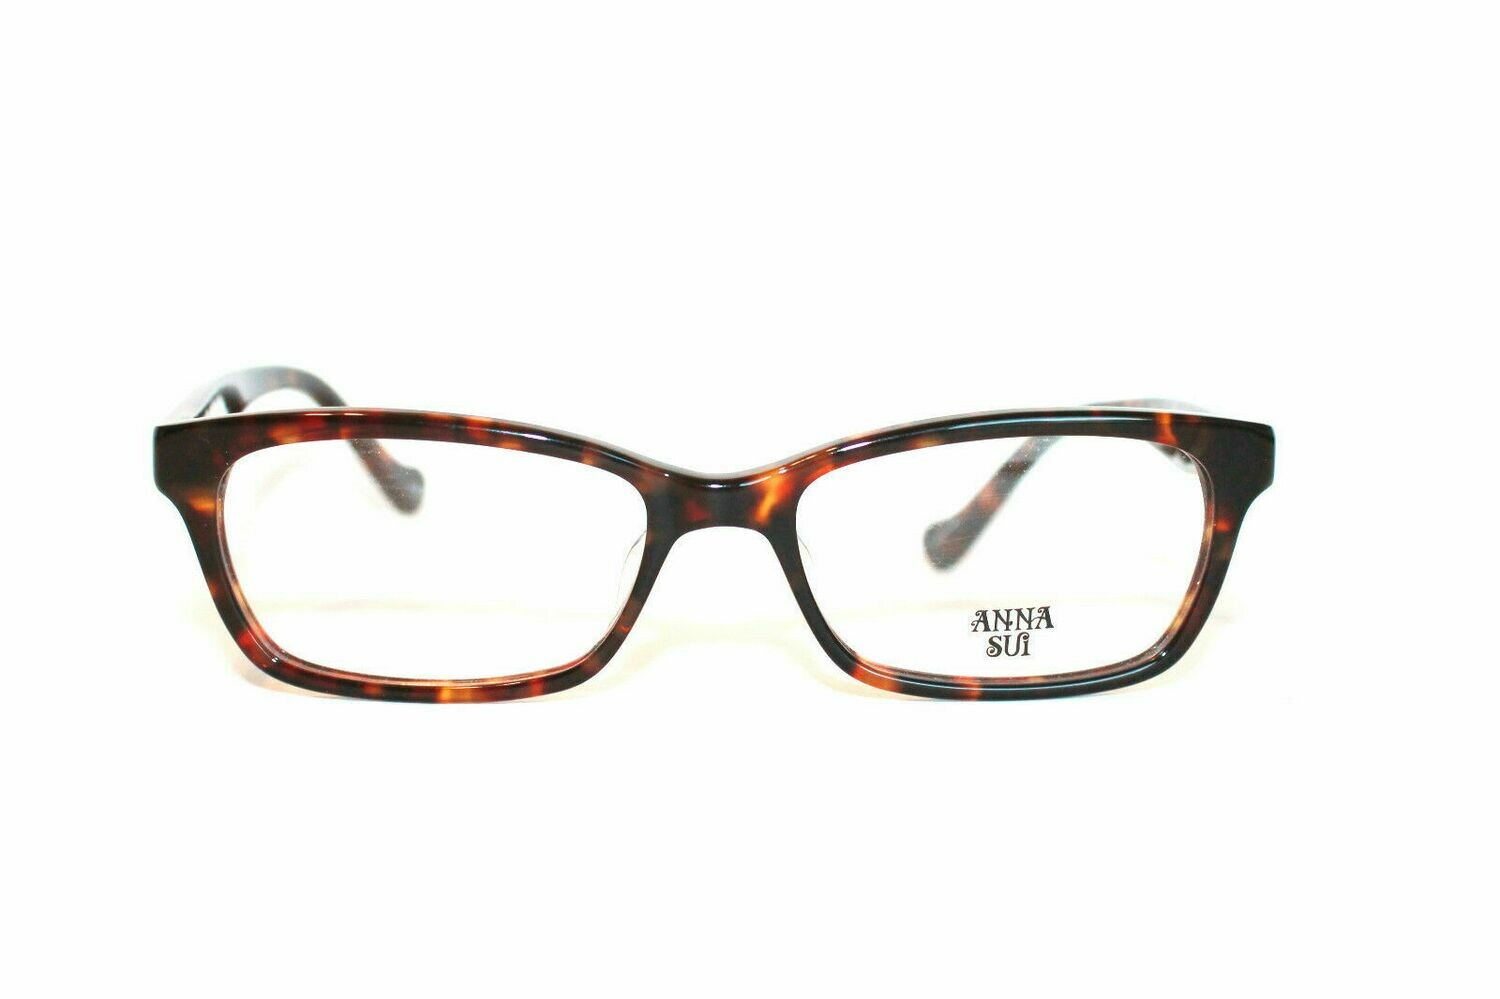 Anna Sui AS 514 in Demi Tortoise Glasses Eyewear New and Authentic RX-able